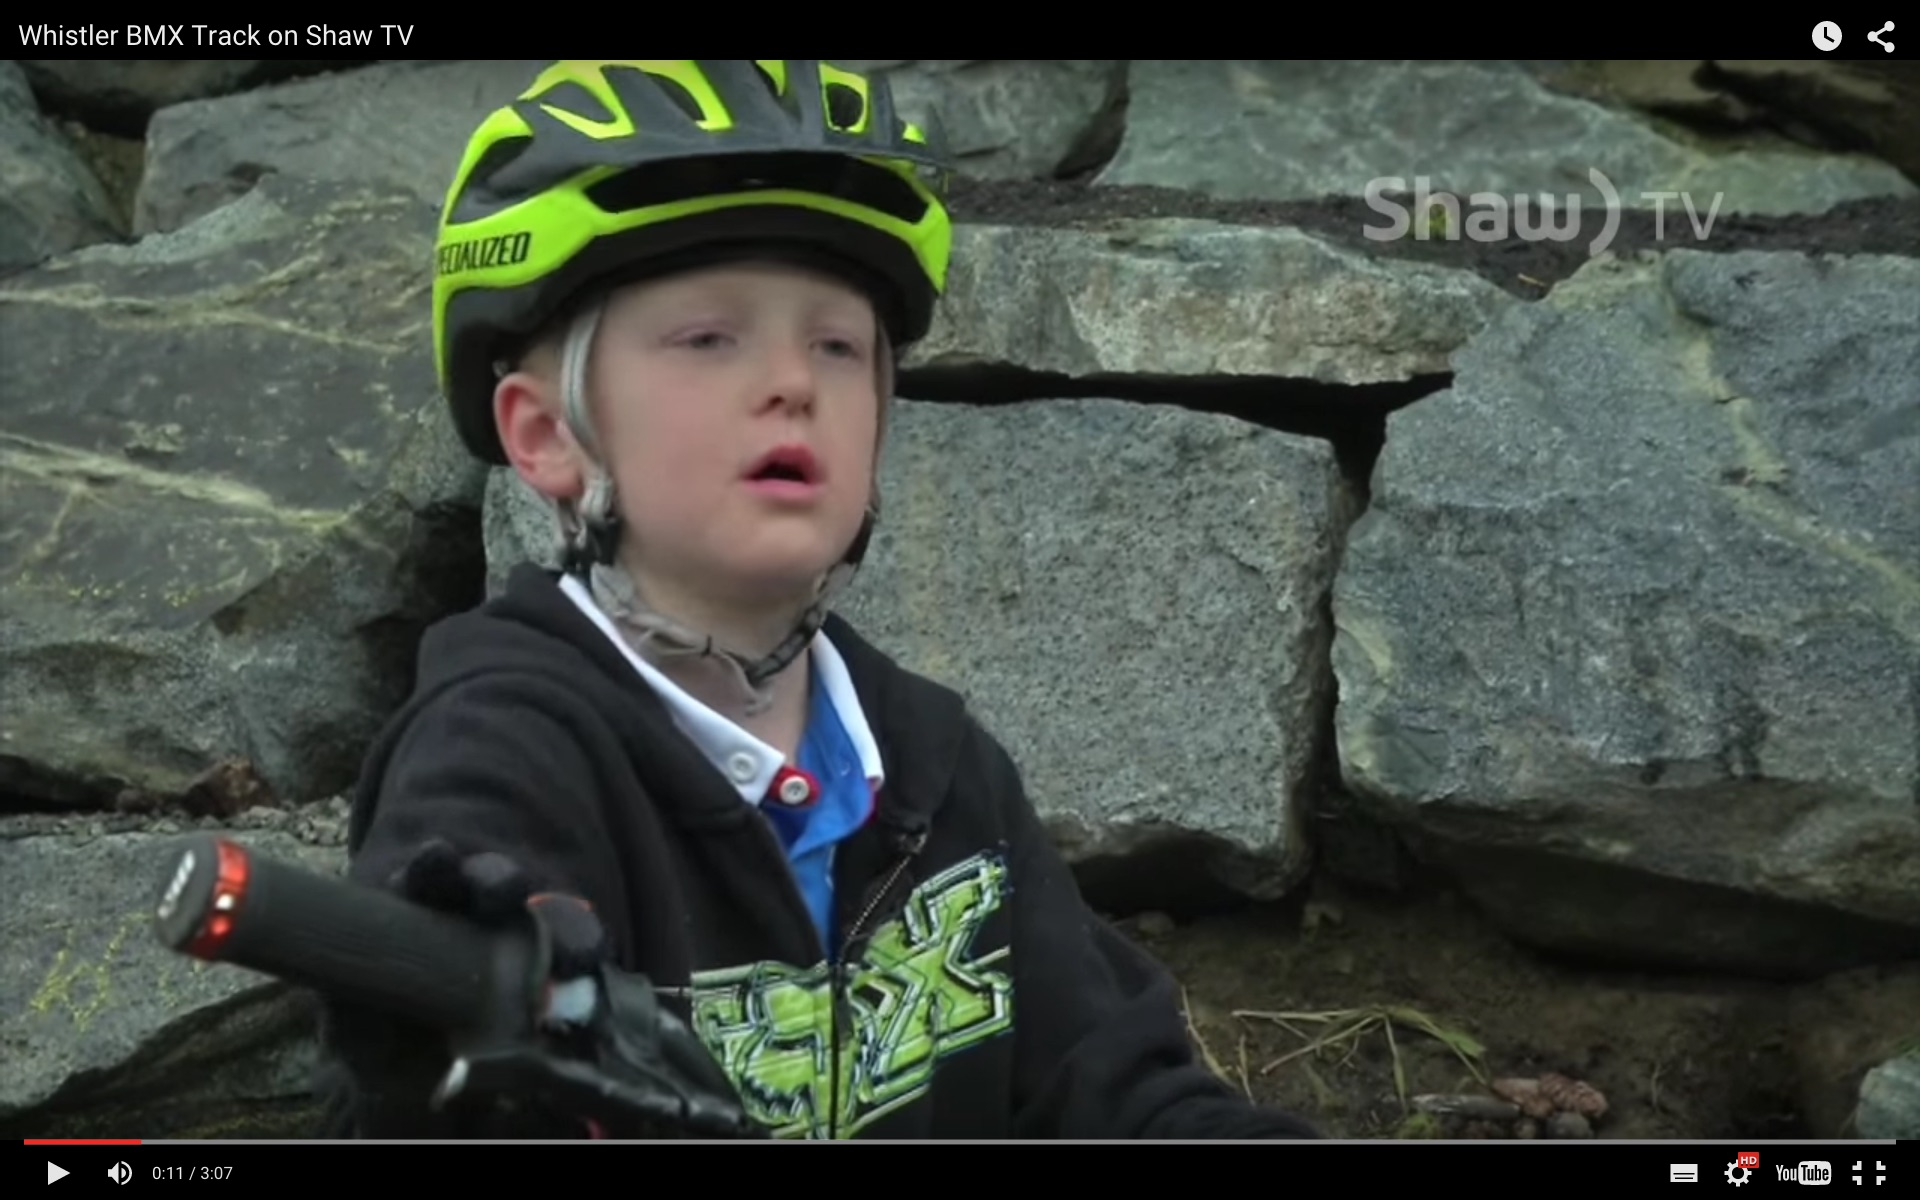 Whistler BMX on Shaw TV Channel 4